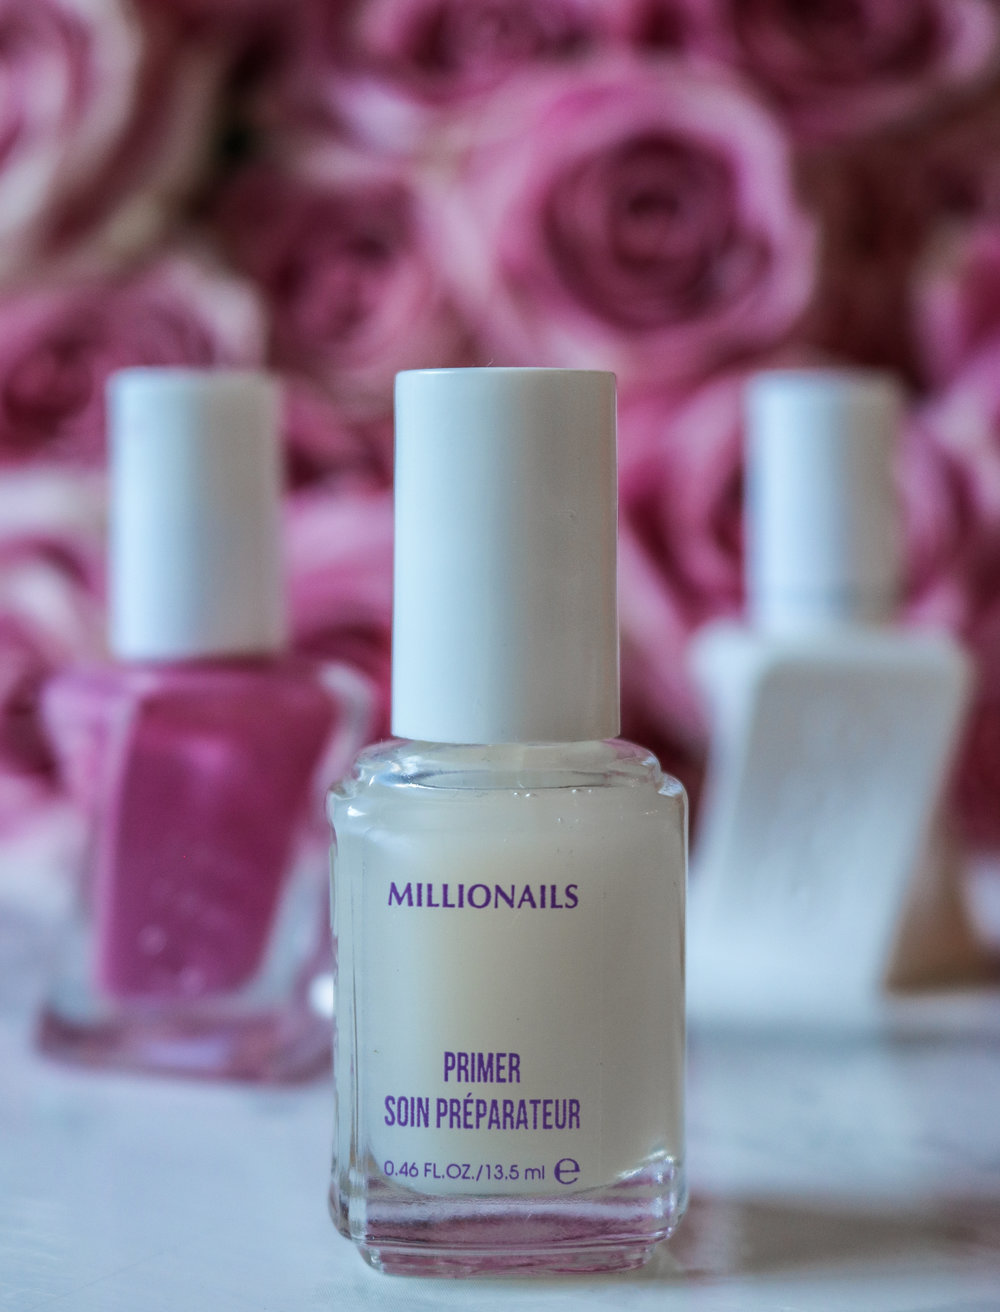 The Hungarian Brunette Essie Millionails primer strengthening nail treatment review